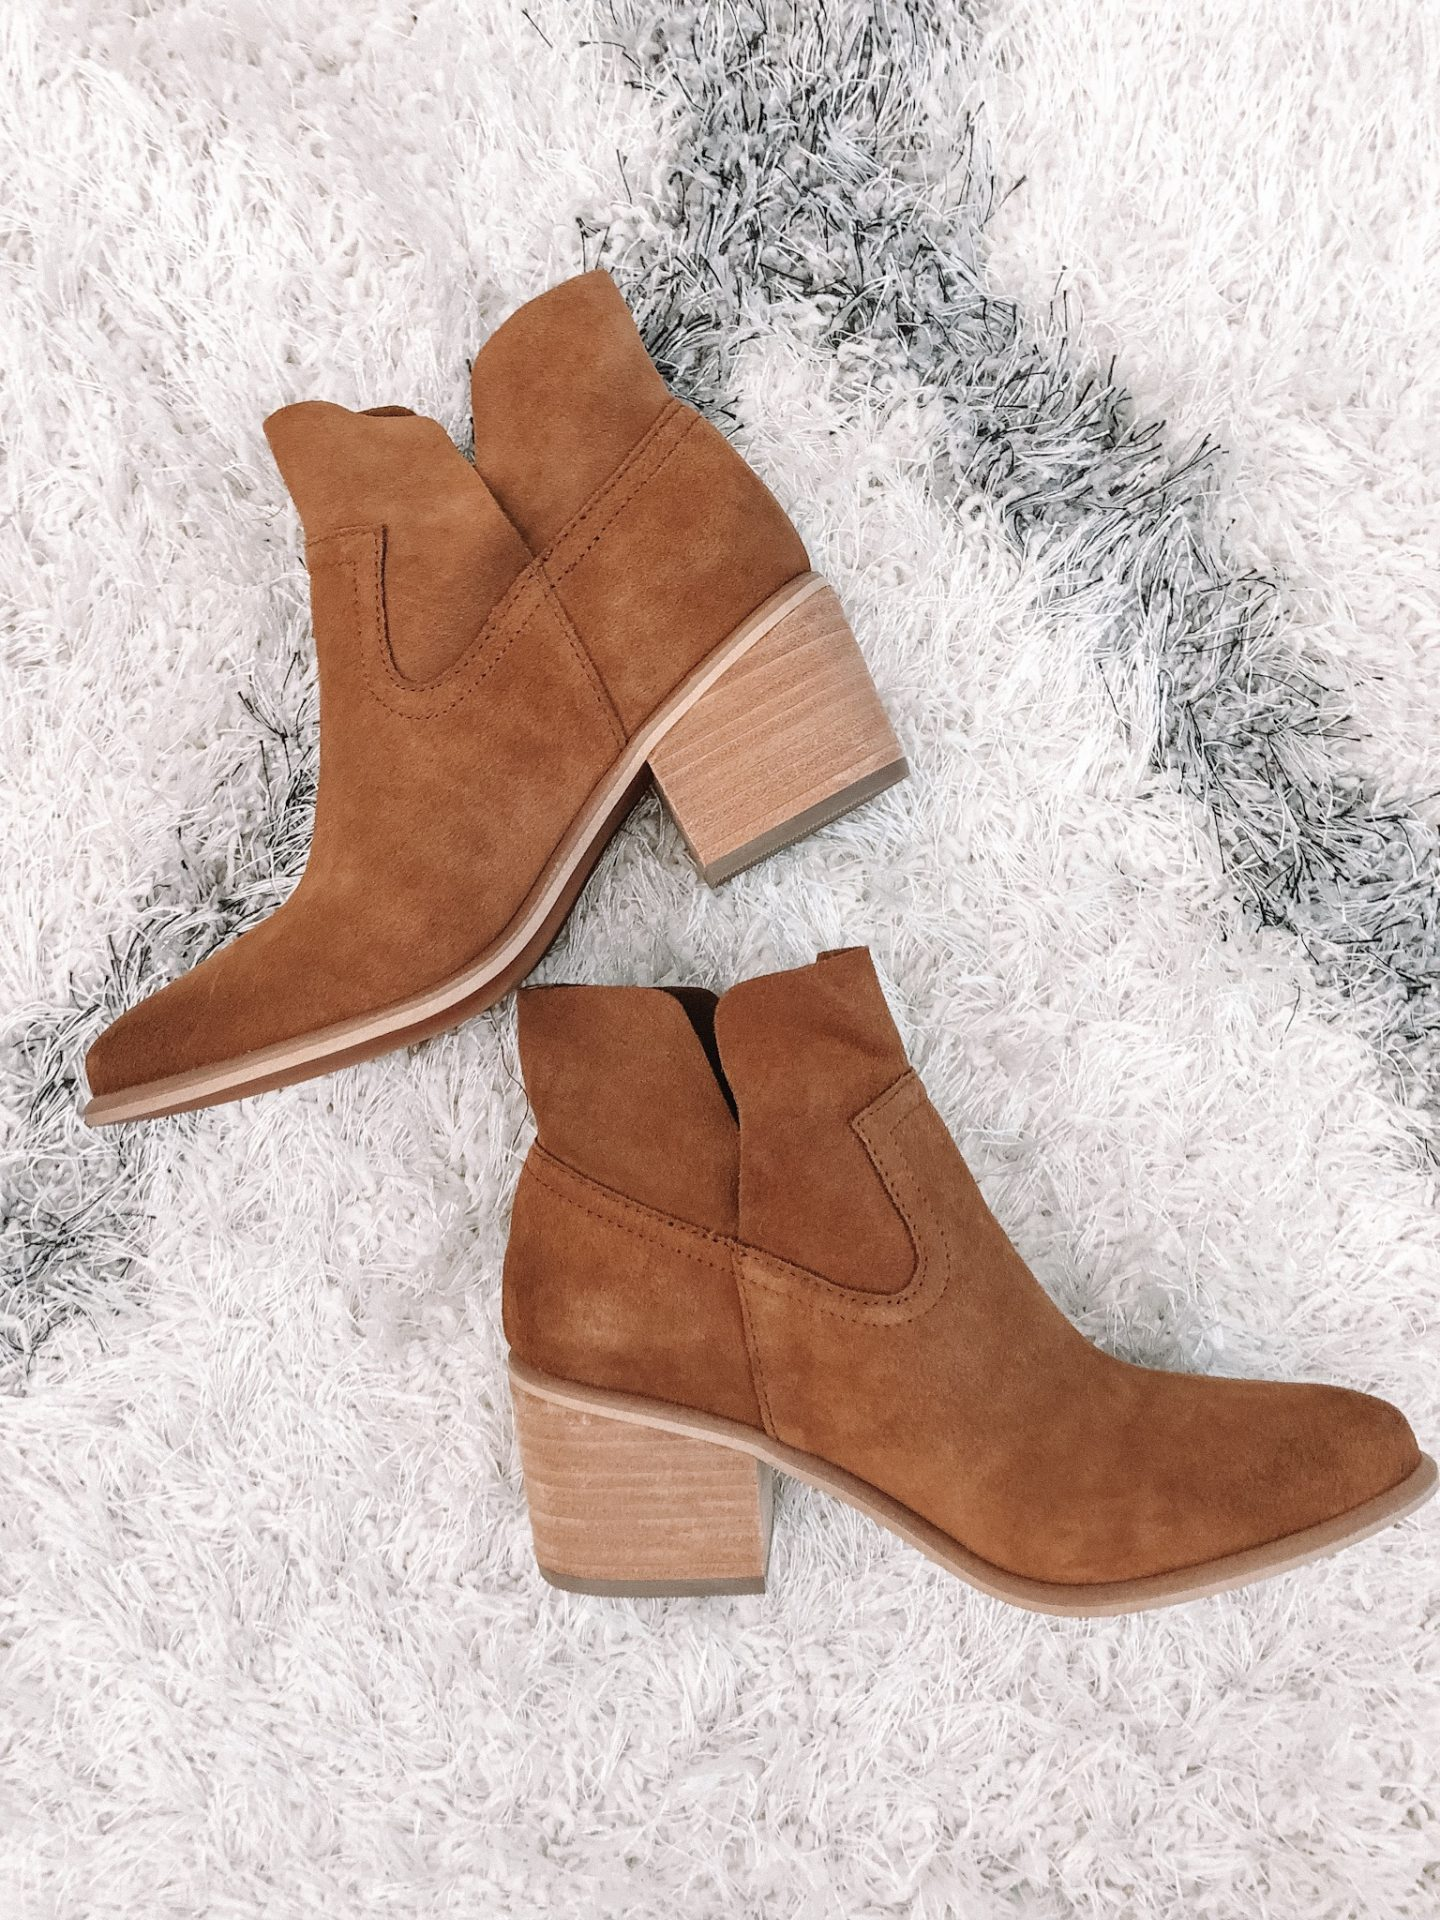 eda2a242c14 BP Brice Notched Booties (NOW   80    AFTER SALE   120 )  So I actually  ordered these booties in two colors (the cognac